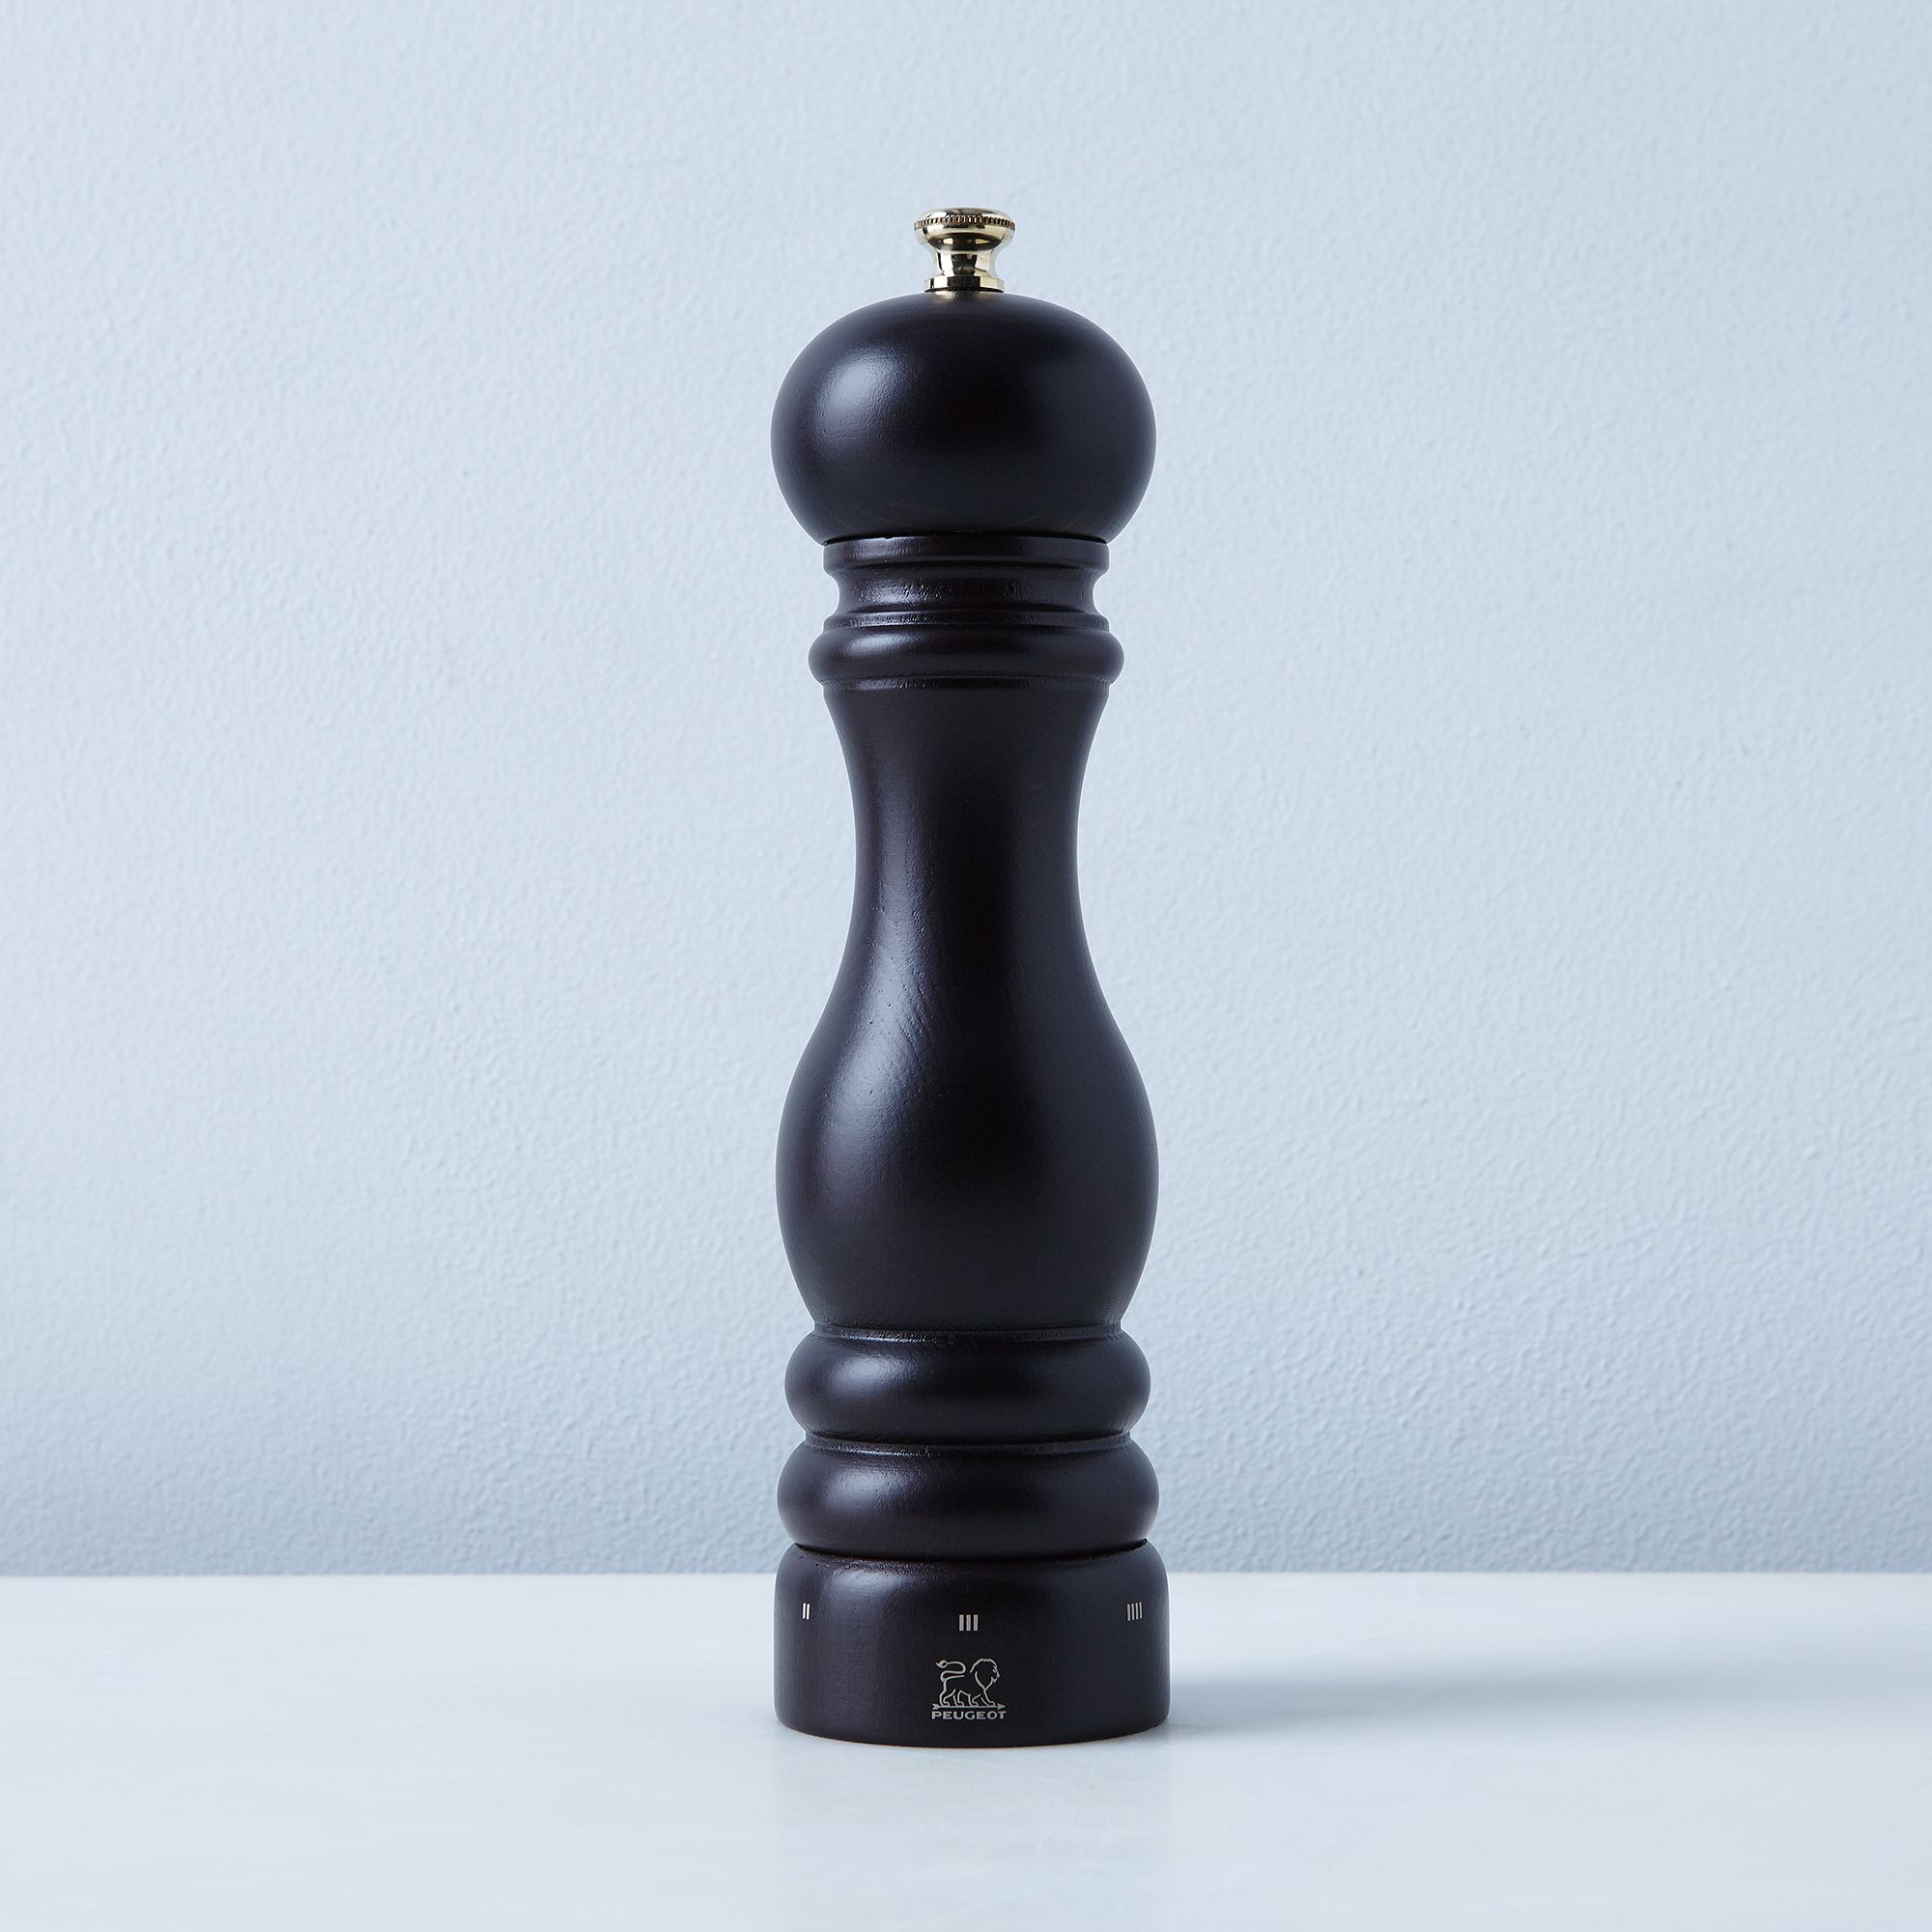 47a2bd79 34bb 4815 a8b2 e533c4bb2032  2016 0628 peugeot paris uselect chocolate 8.75 inch pepper mill silo rocky luten 001